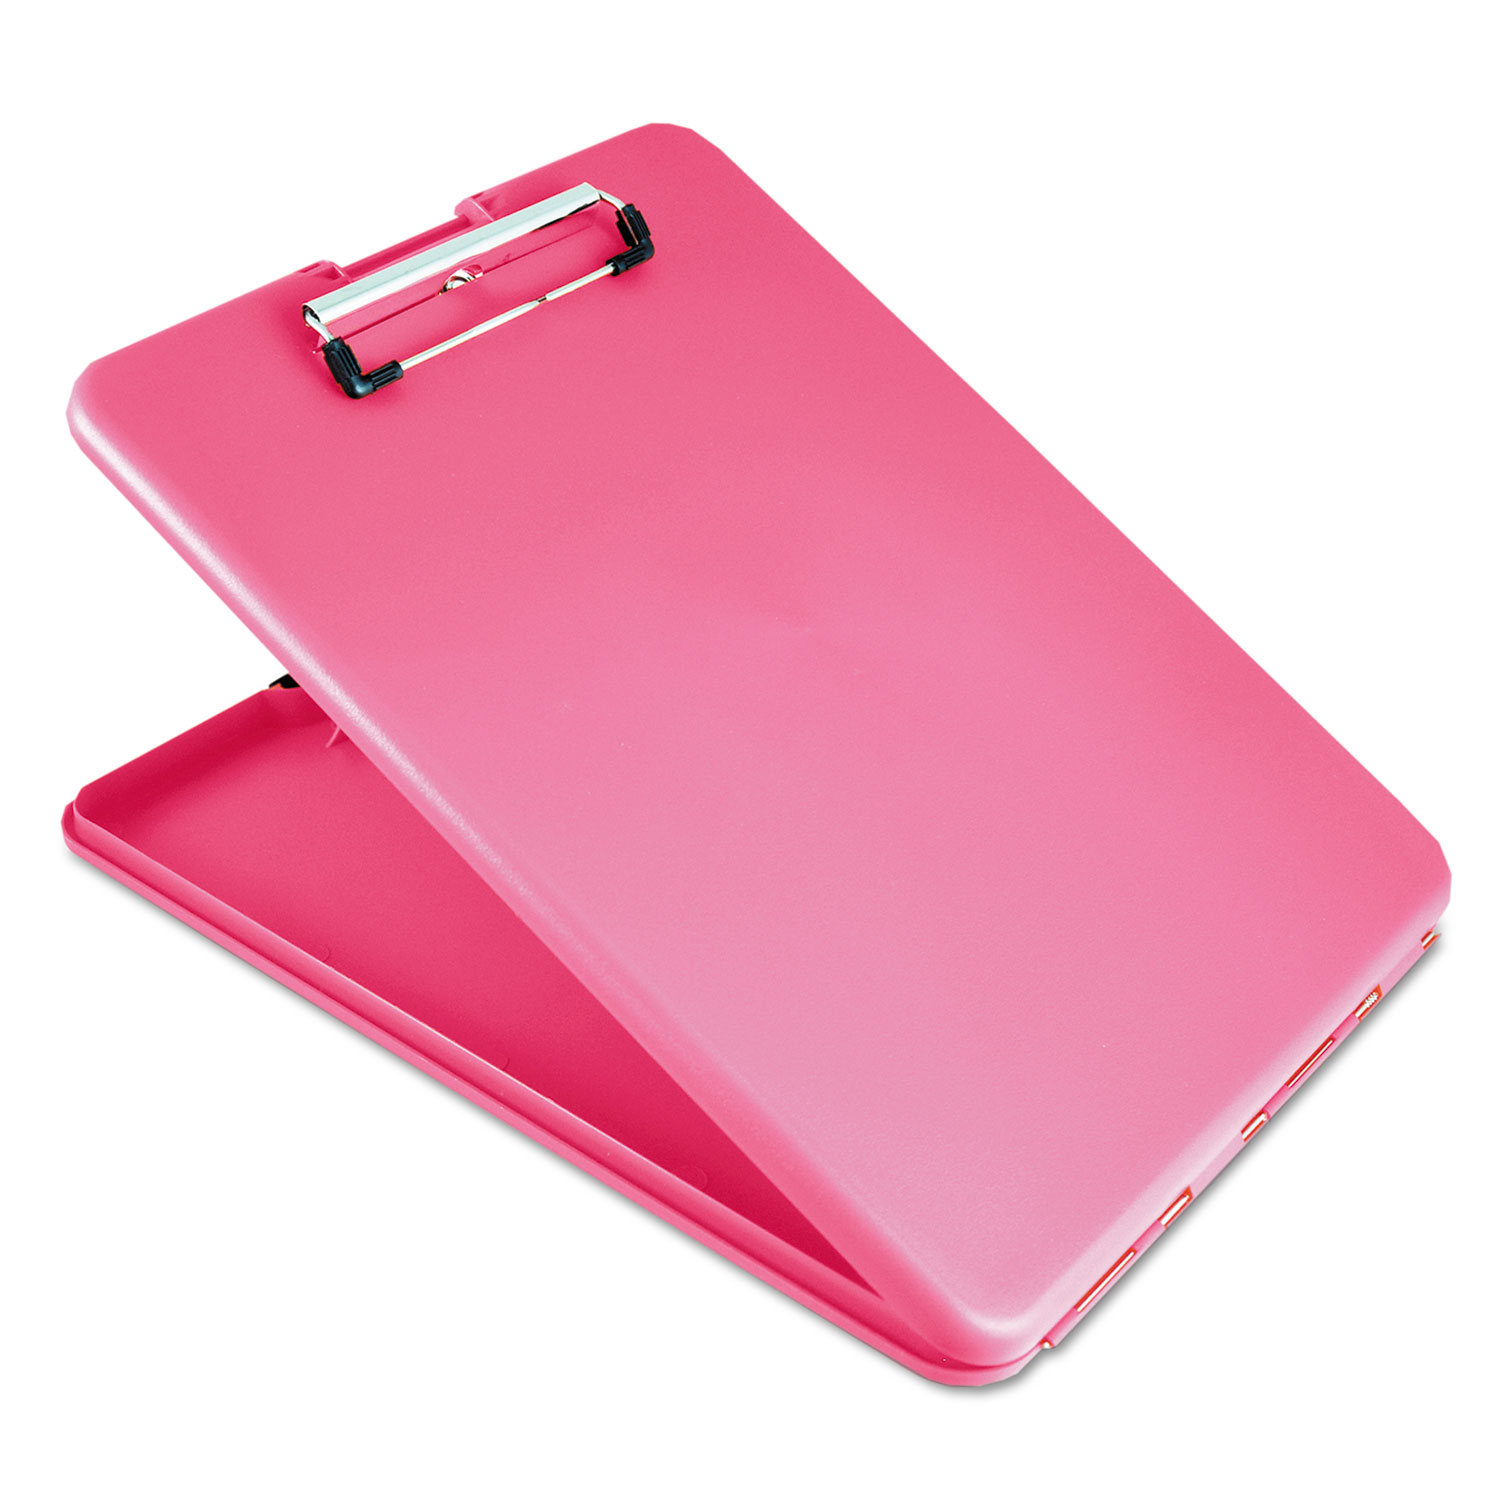 """SlimMate Storage Clipboard, 1/2"""" Clip Capacity, Holds 8 1/2 x 11 Sheets, Pink"""